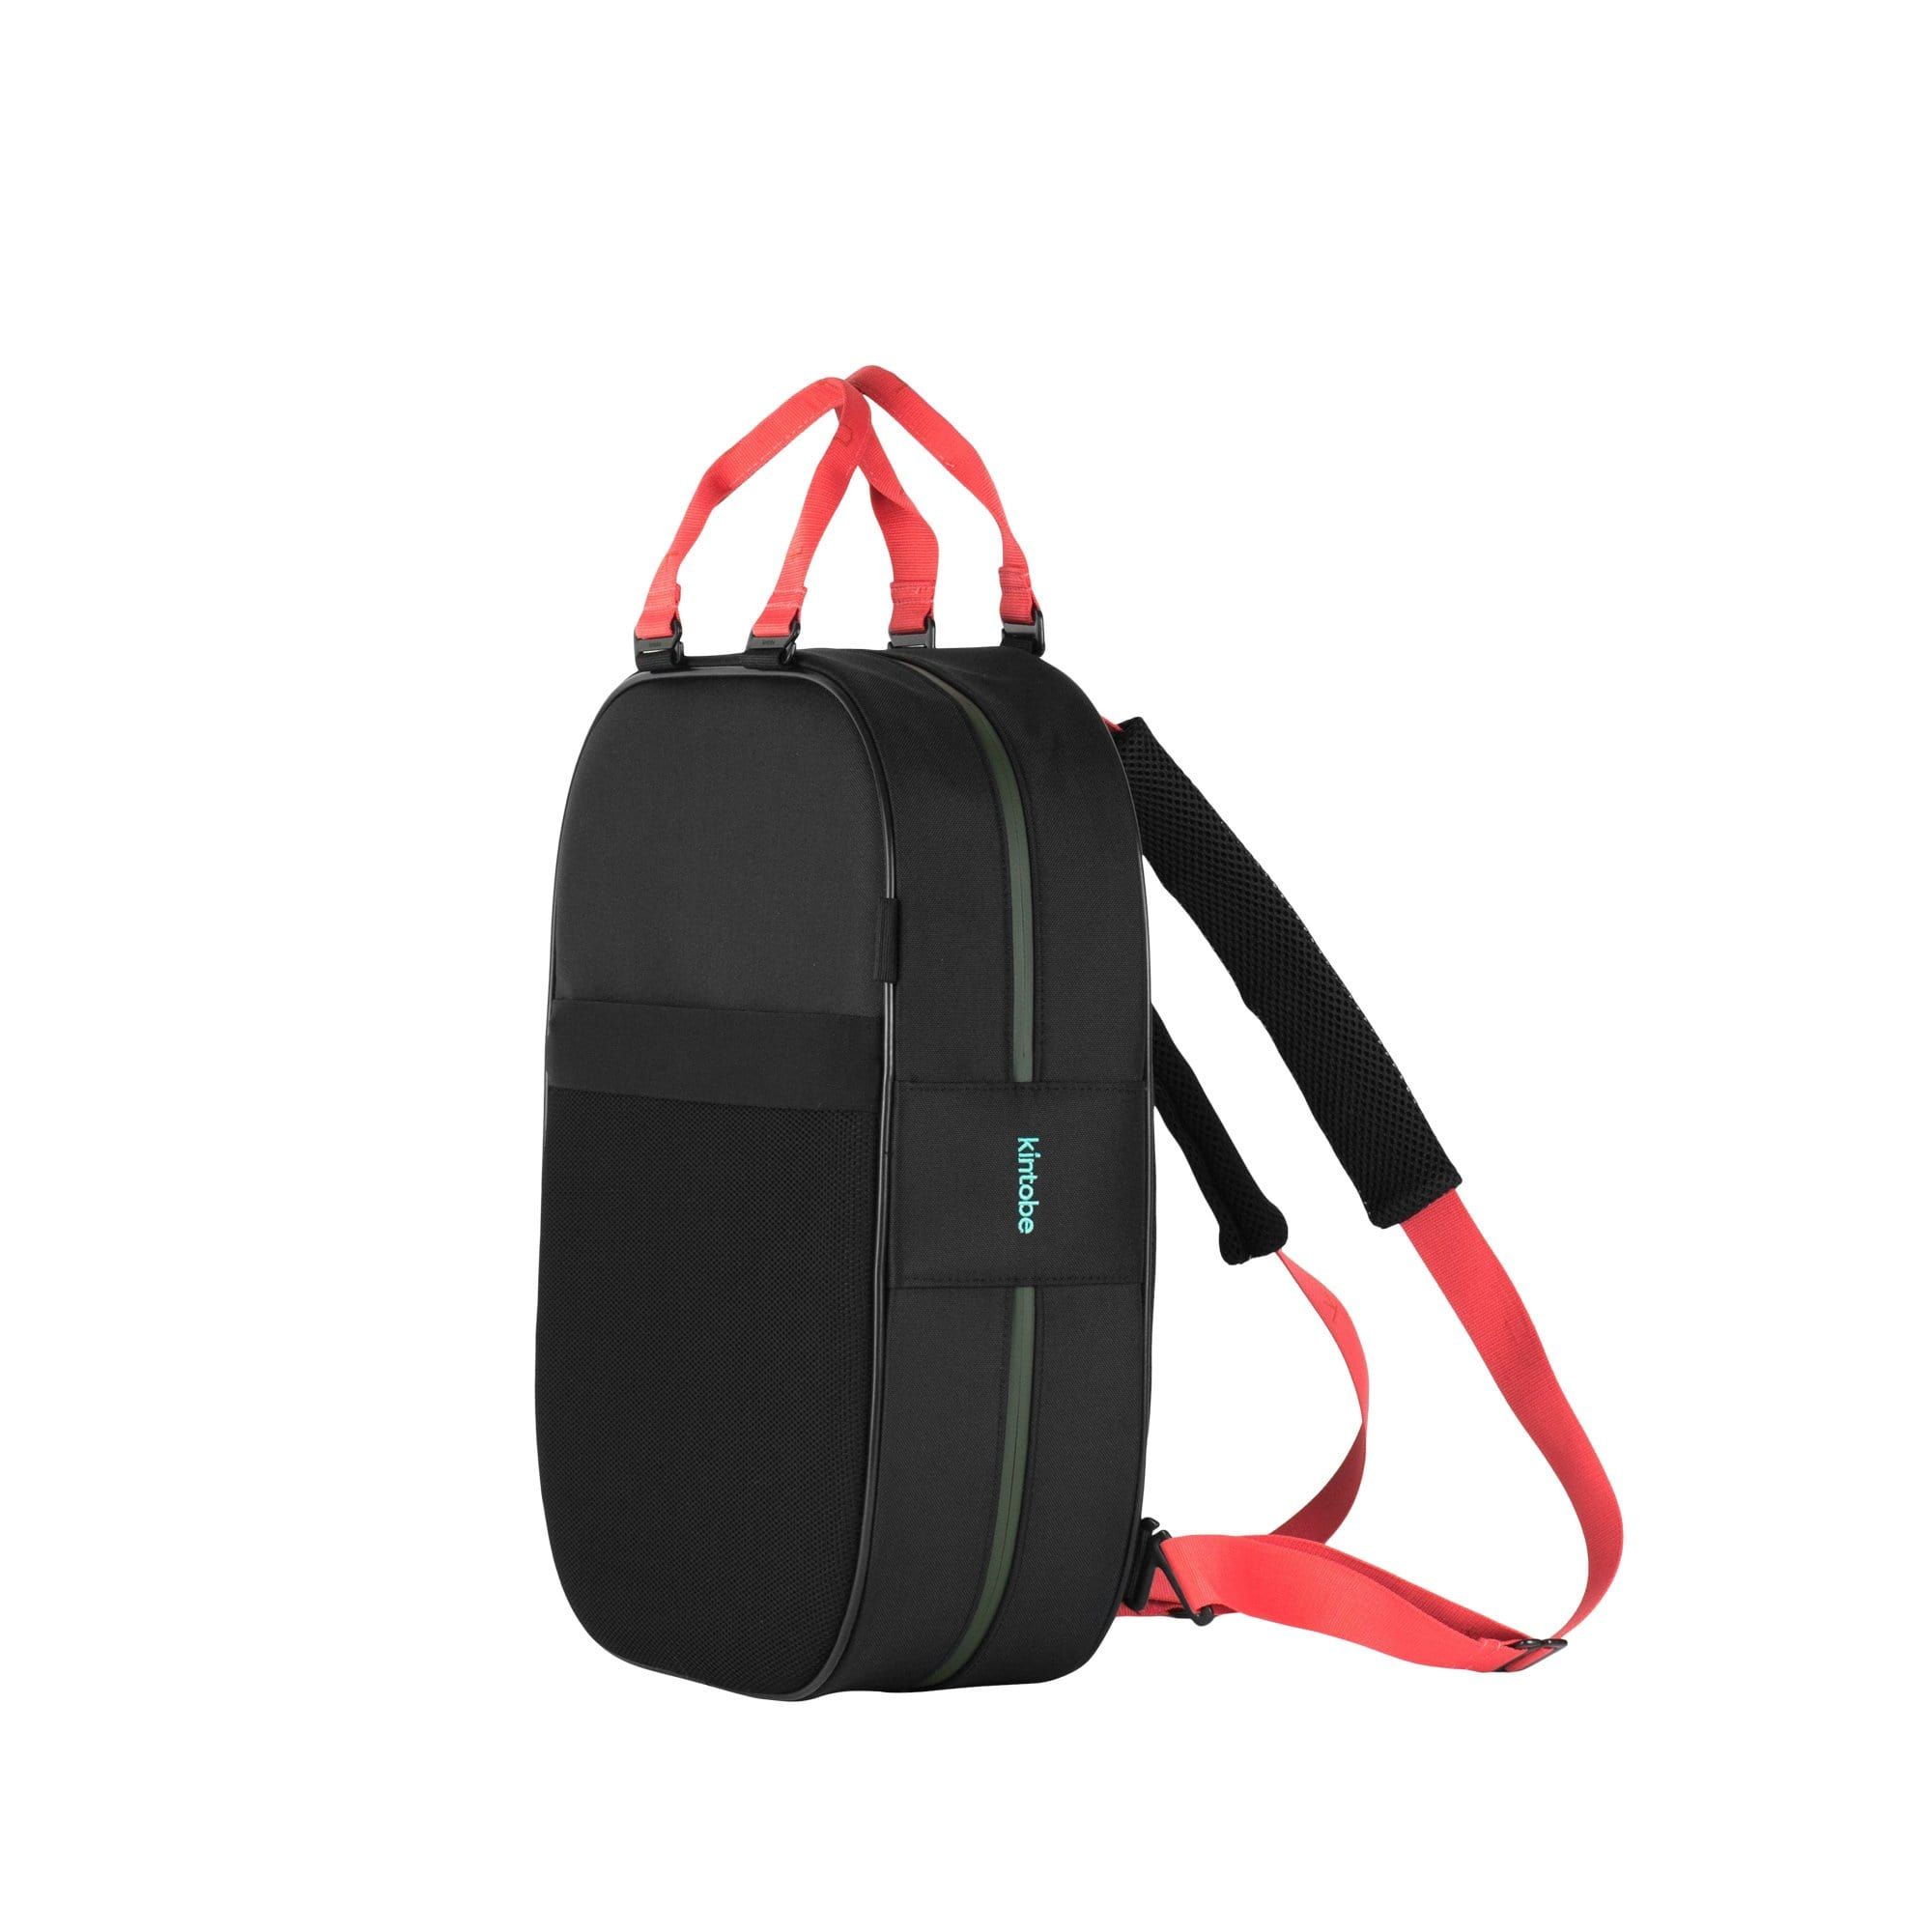 Kintobe Backpacks Coral Straps + Black Backpack